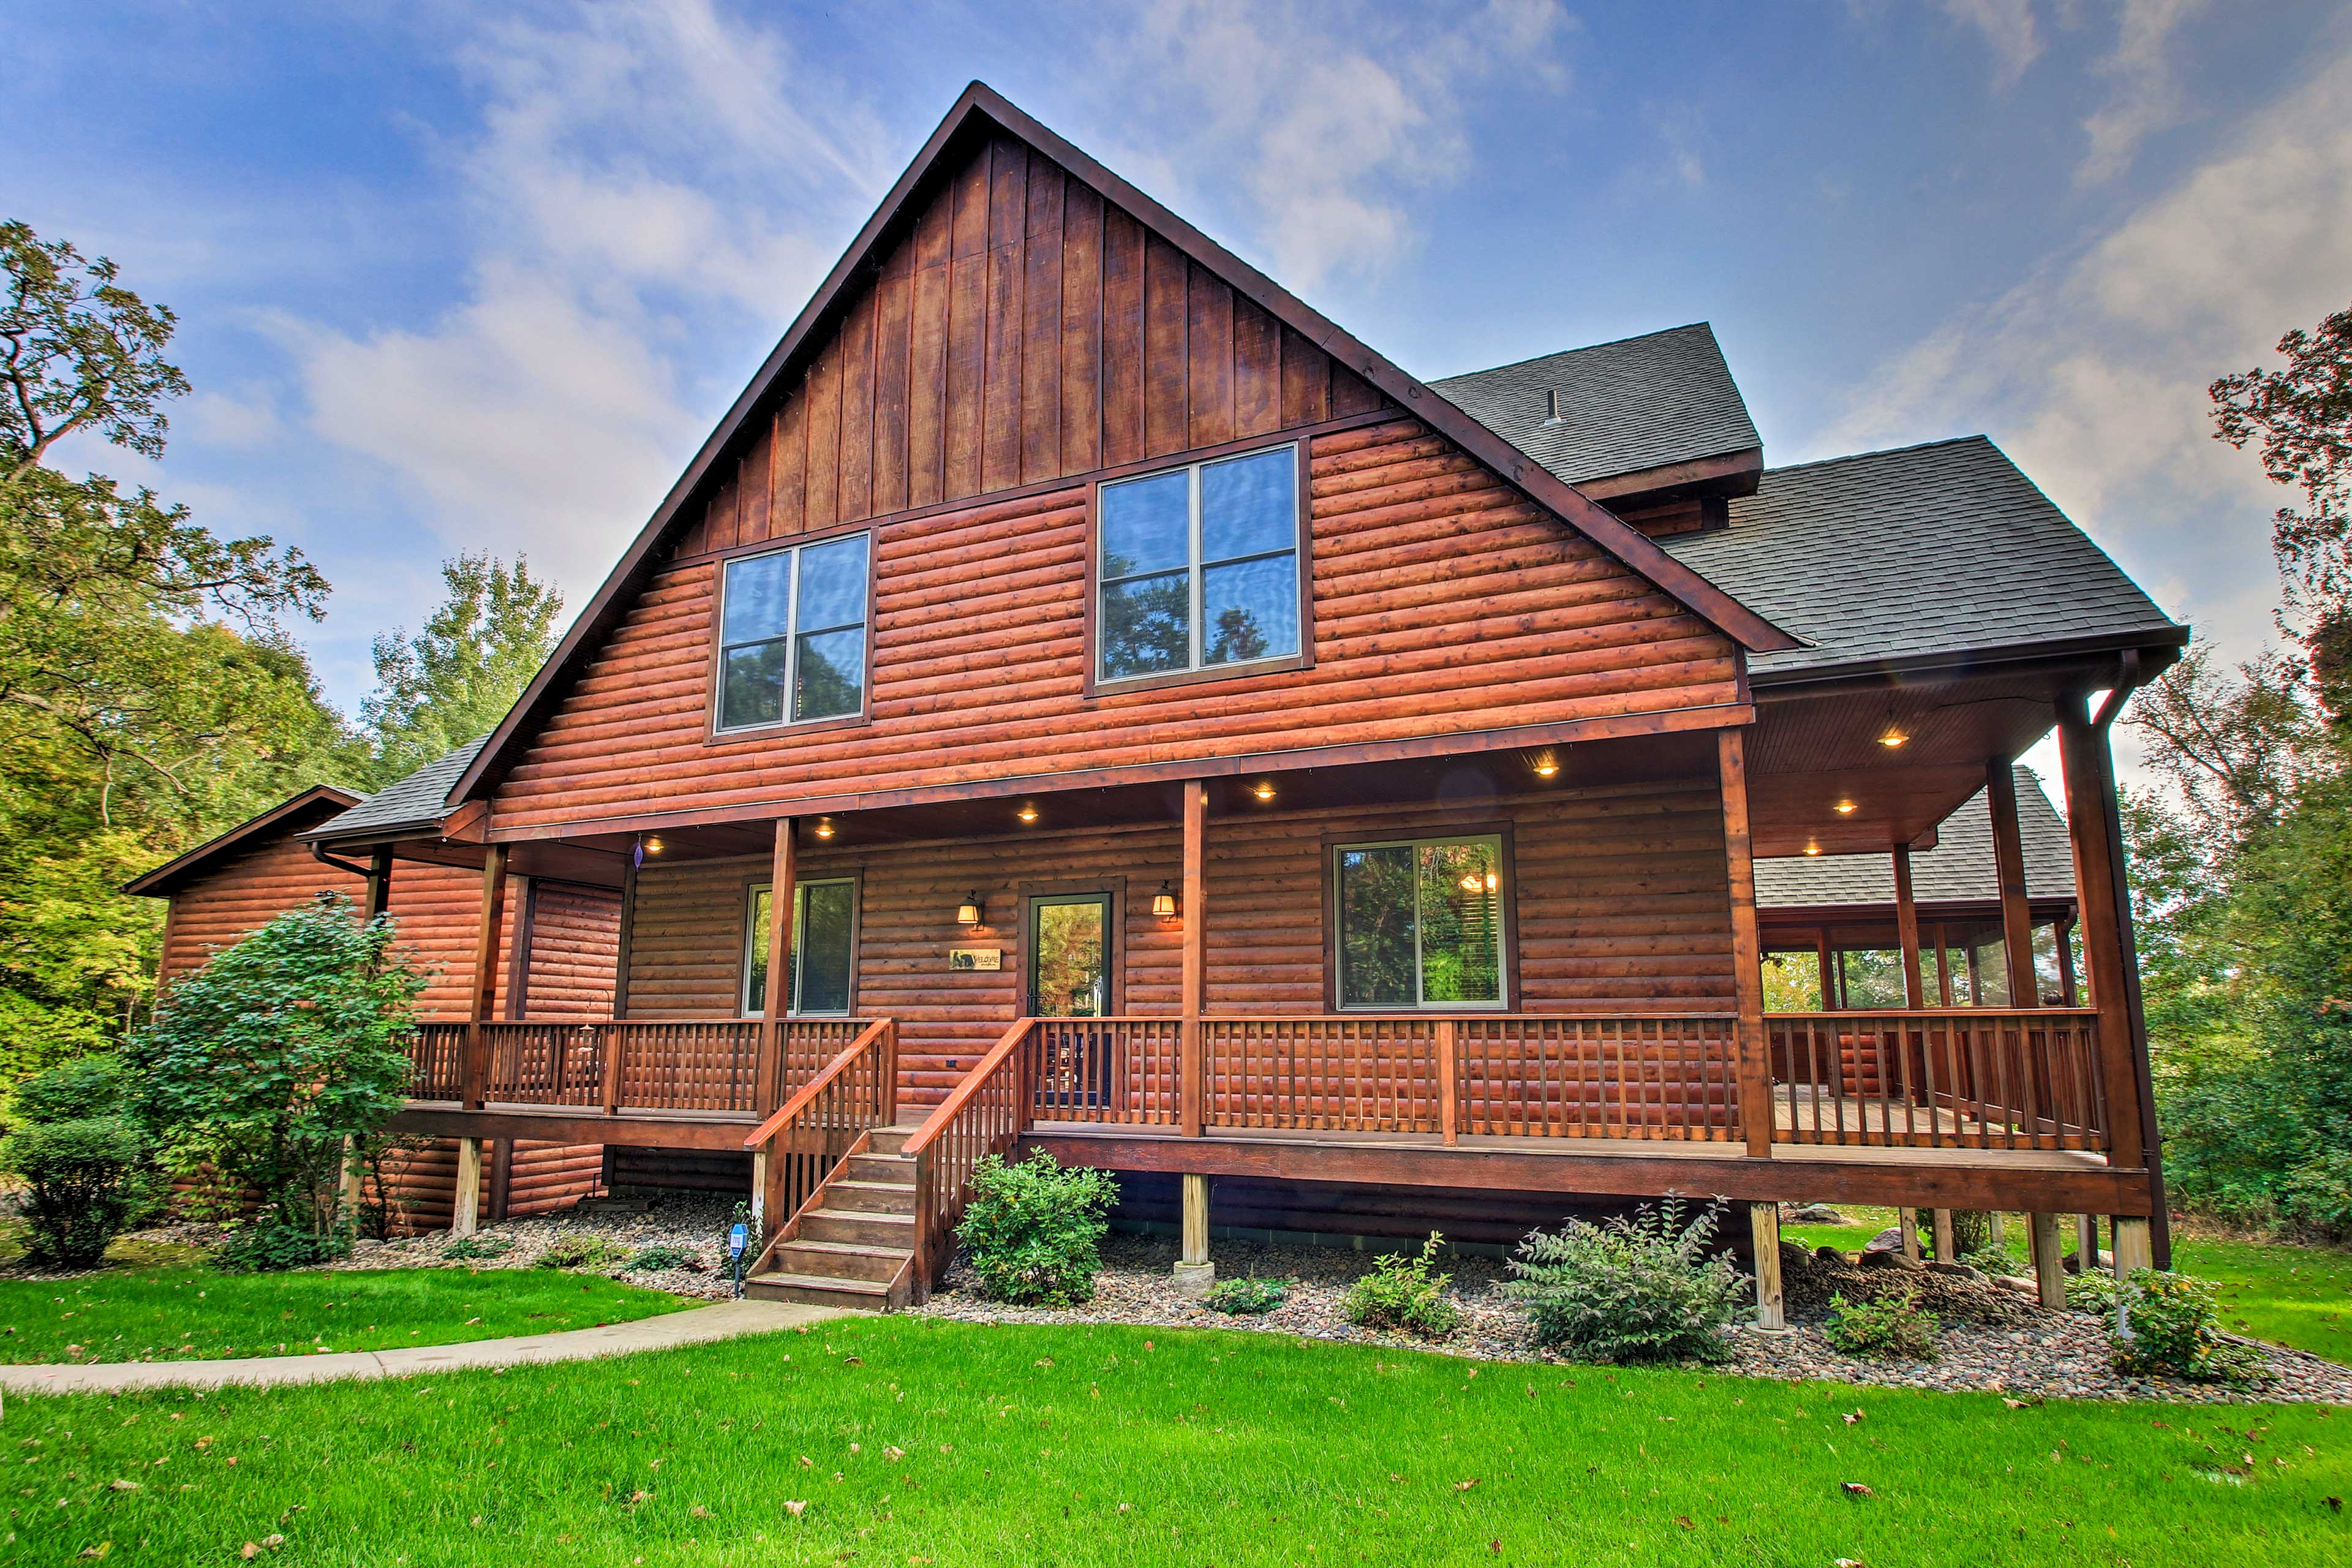 Situated right on Pelican Lake, this luxurious cabin offers a great getaway!